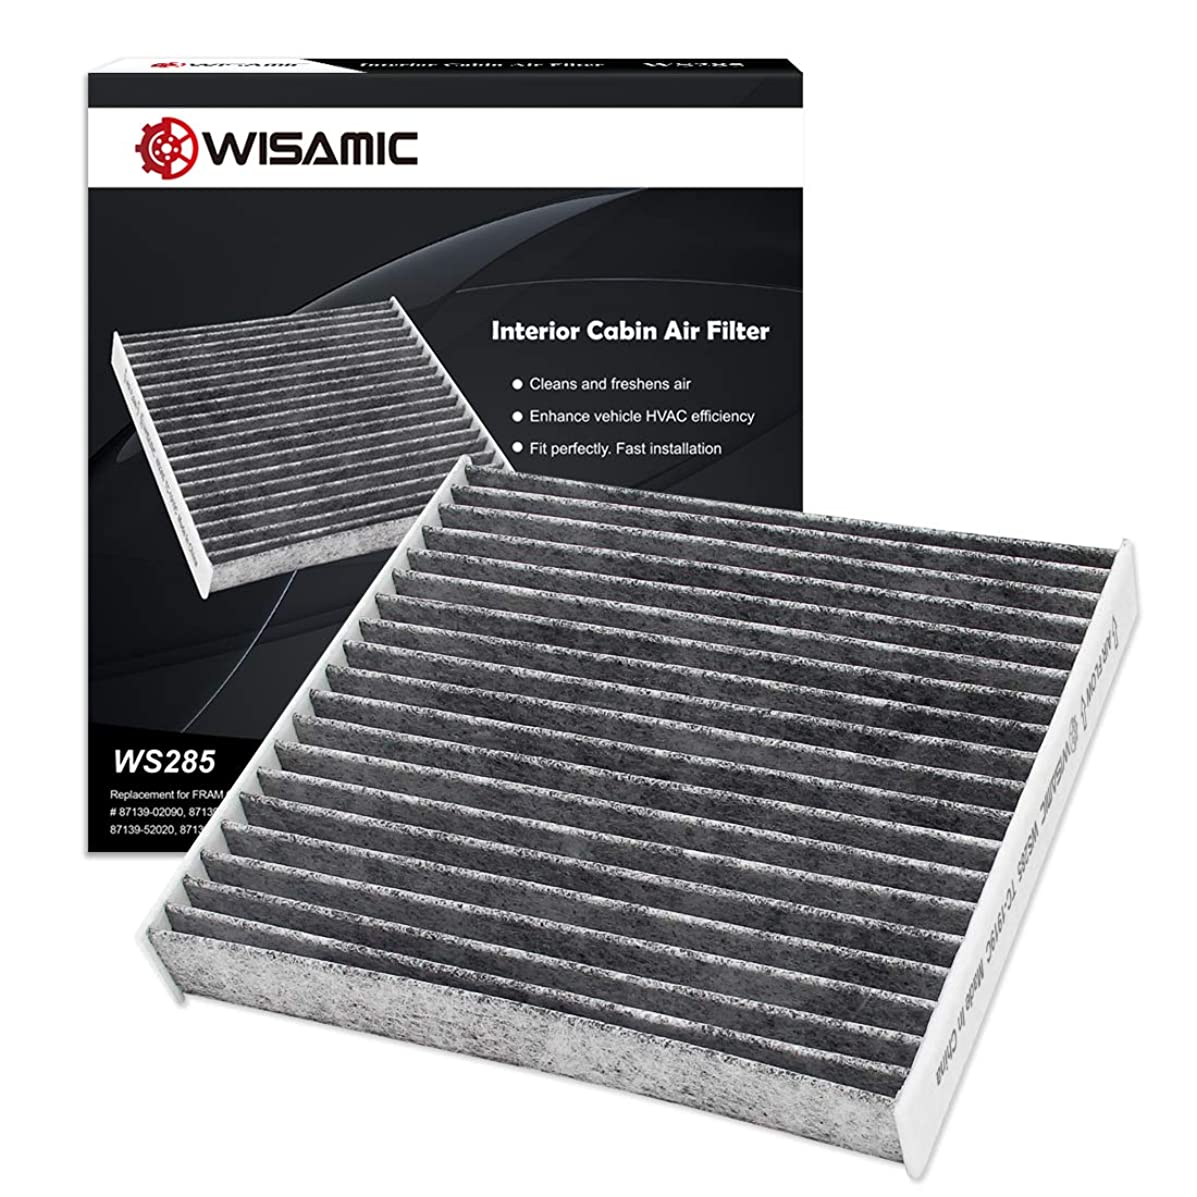 WISAMIC Cabin Air Filter Replacement for Toyota/Lexus/Scion/Subaru includes Activated Carbon WS285 (CF10285)